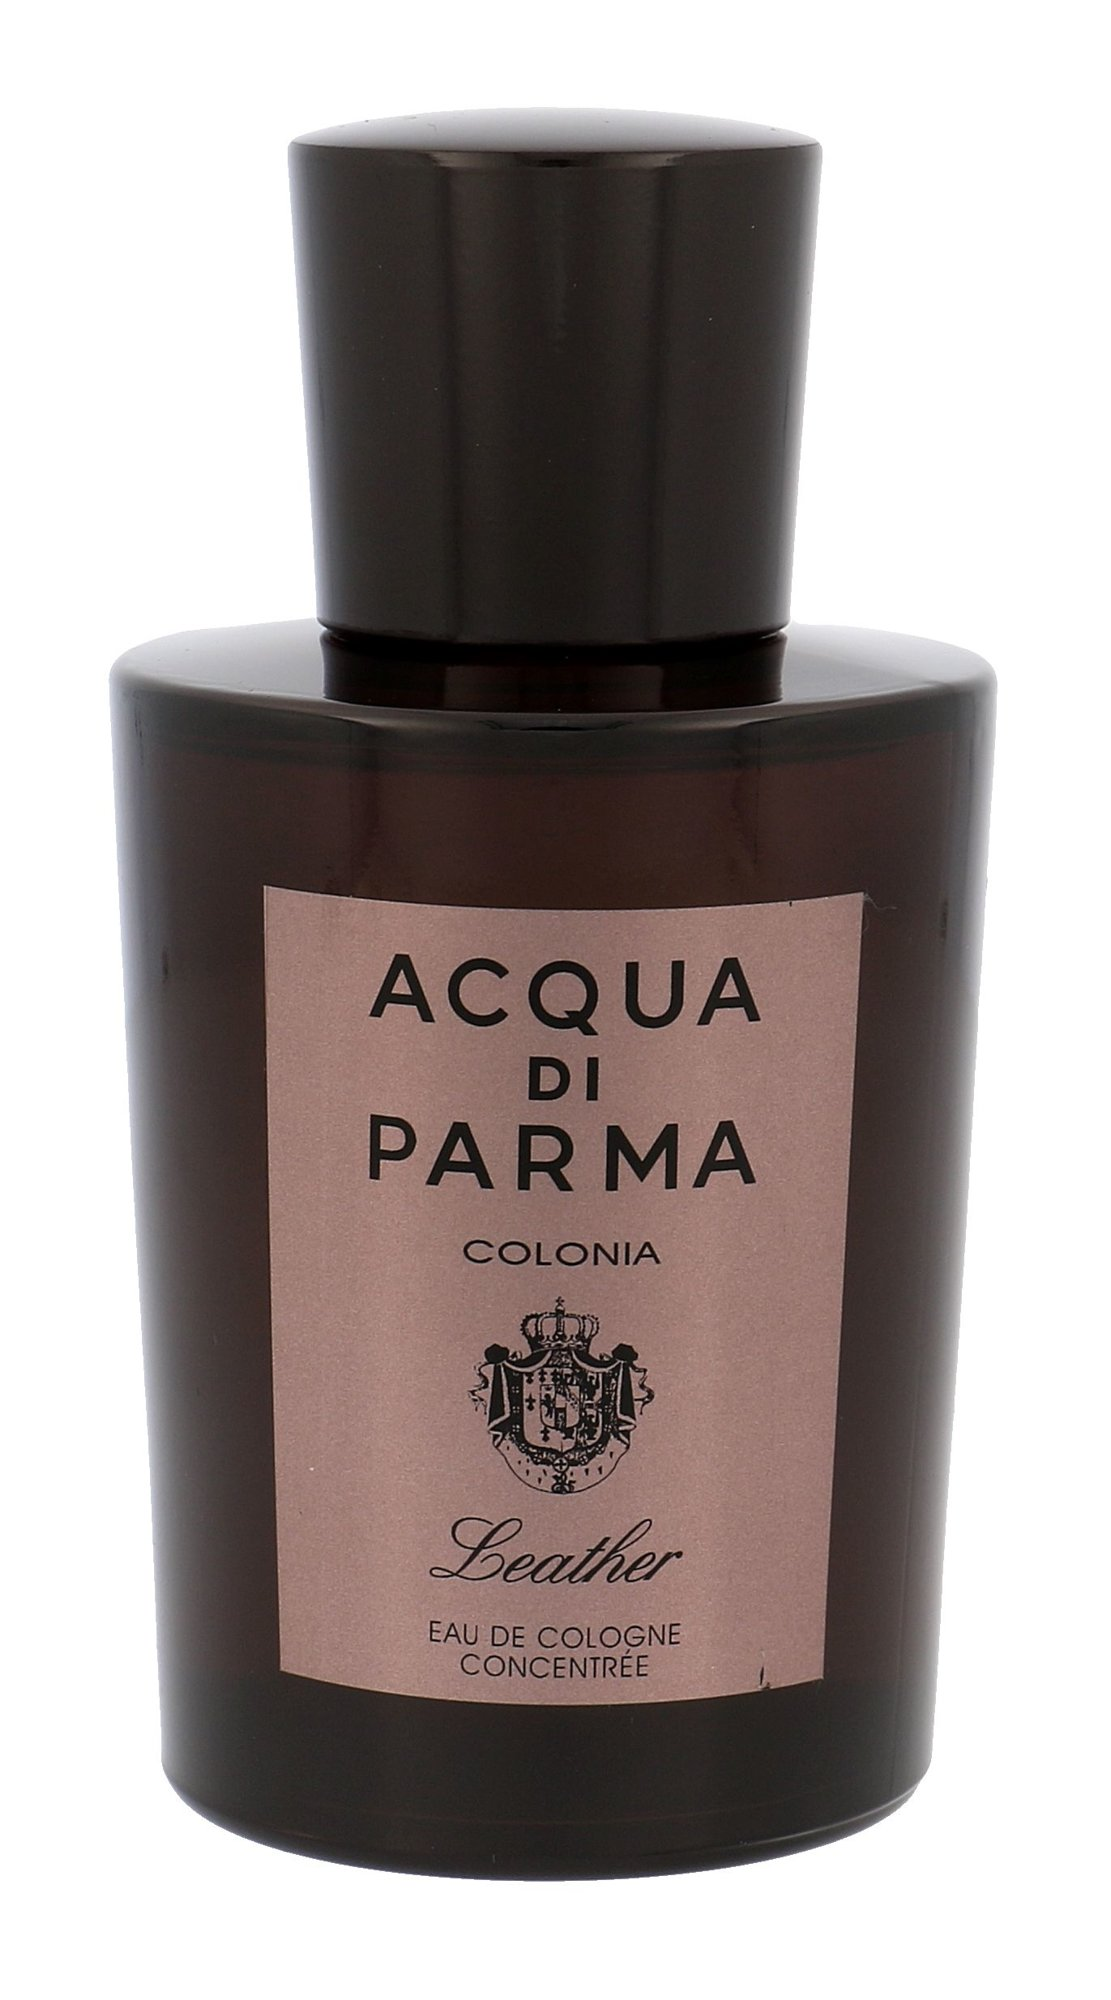 Acqua di Parma Colonia Leather Cologne 100ml